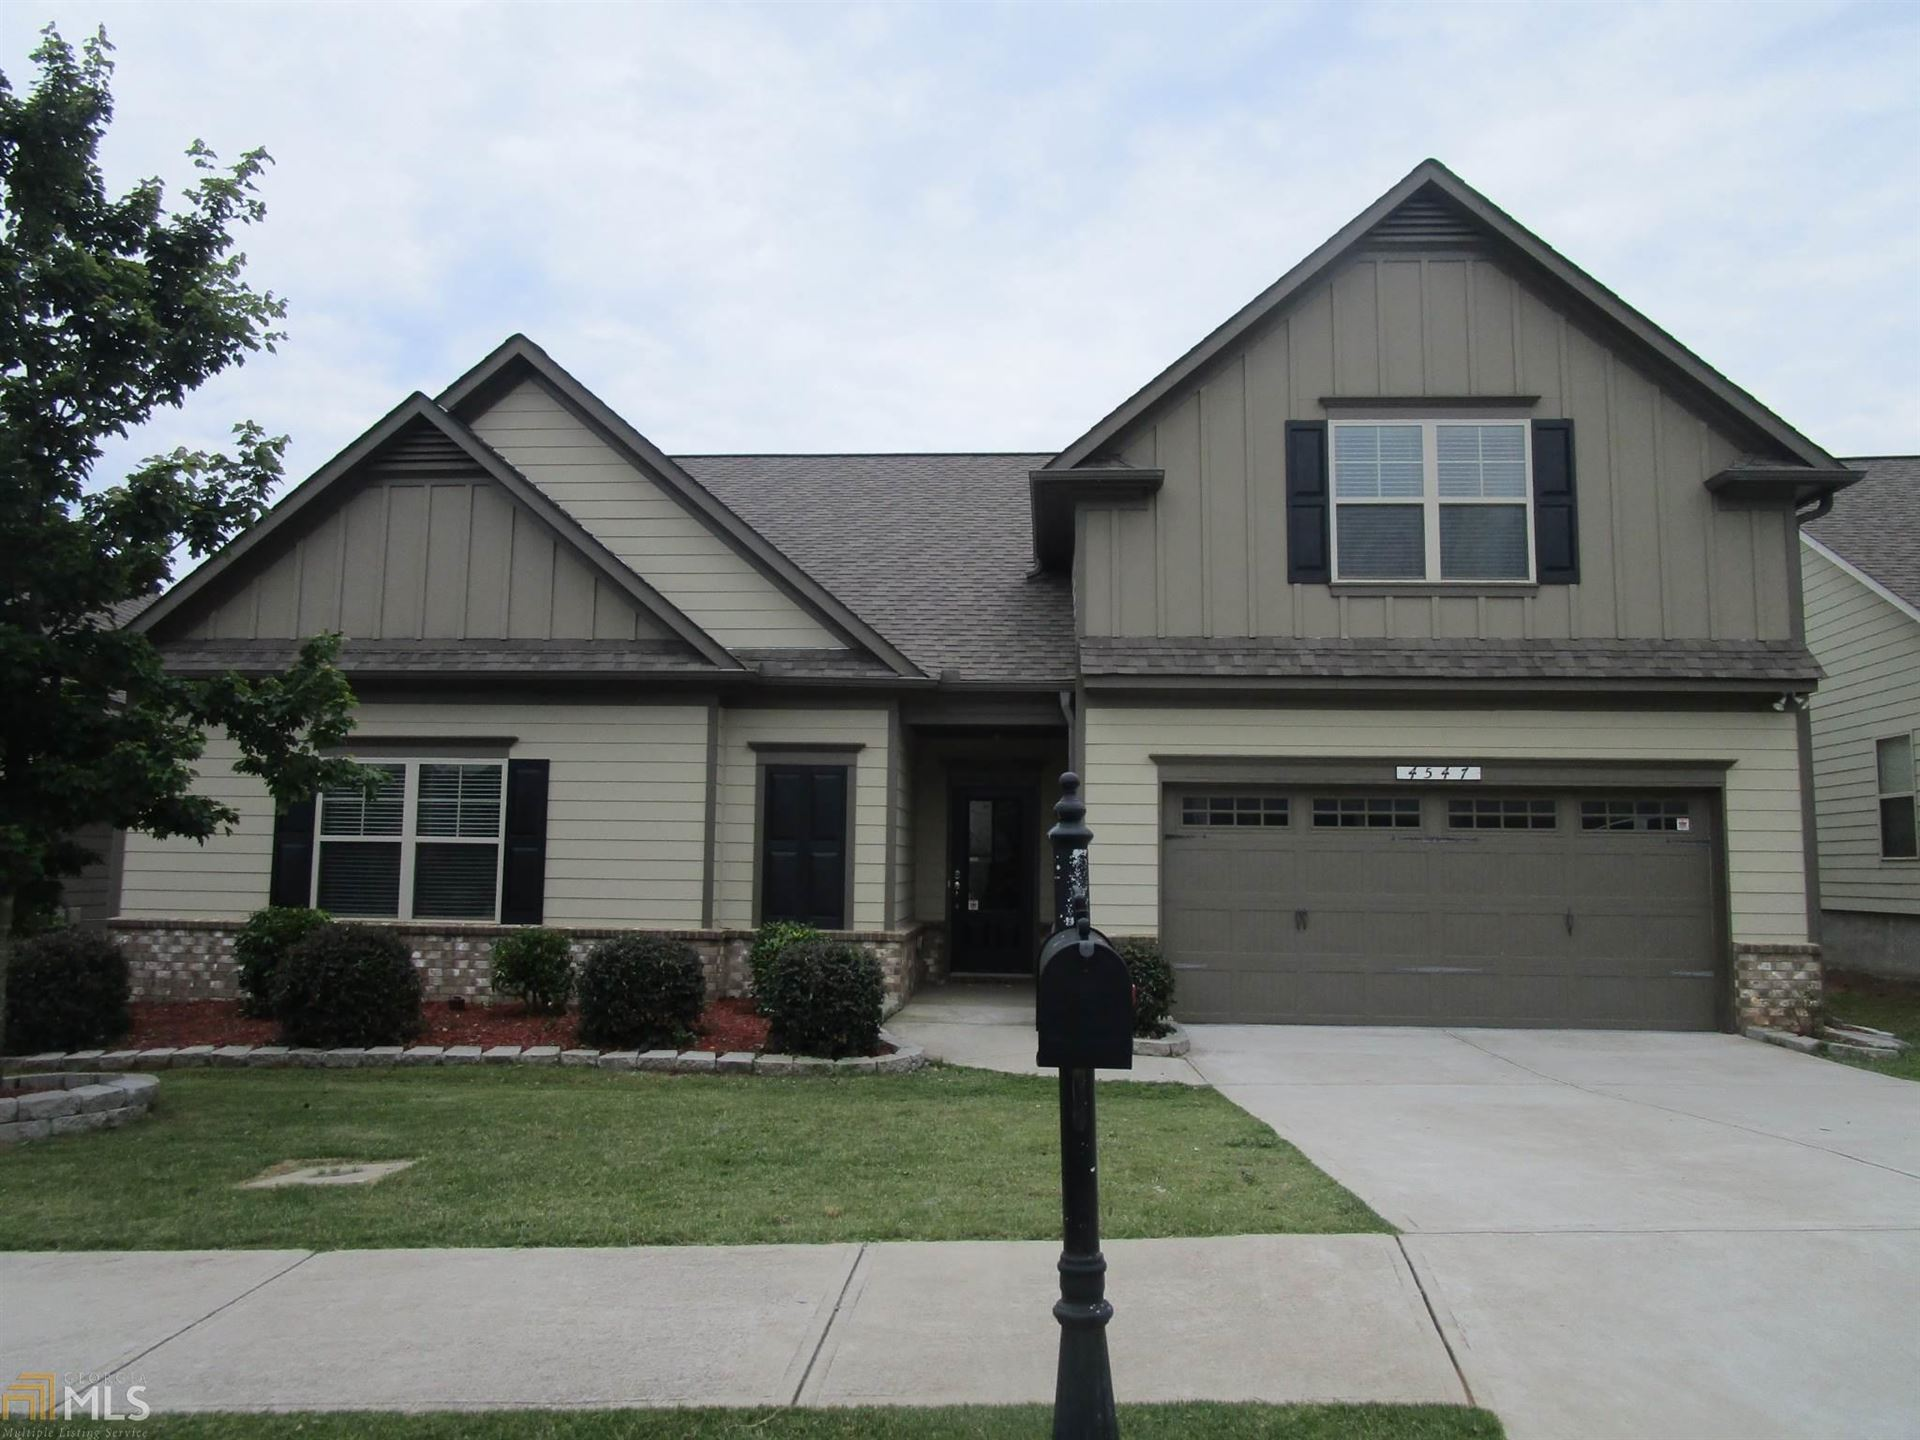 4547 Country Manor Walk, Gainesville, GA 30504 - MLS#: 8820659